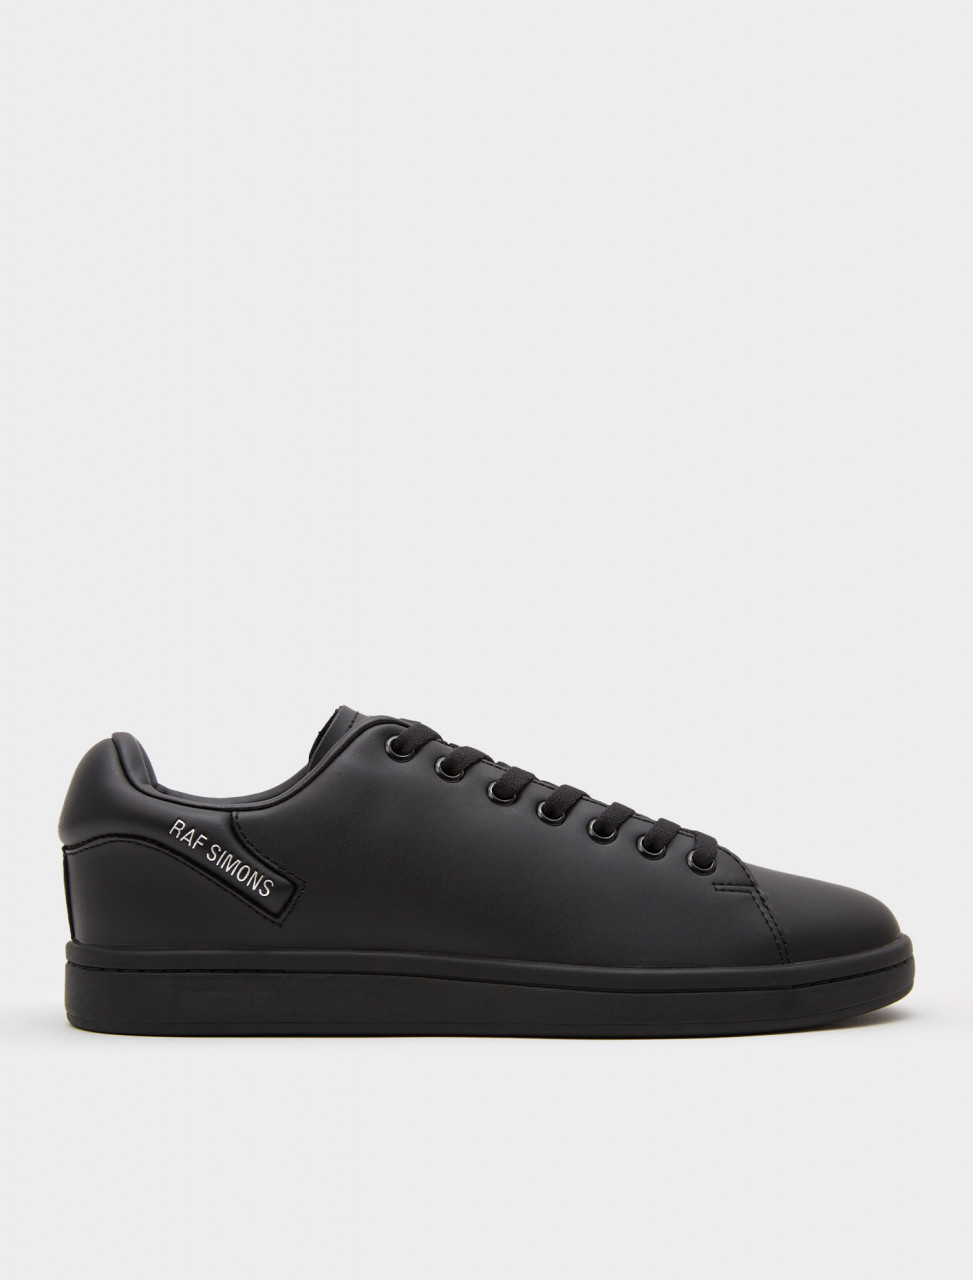 162-HR760001S-0003 RAF SIMONS RUNNERS ORION BLACK